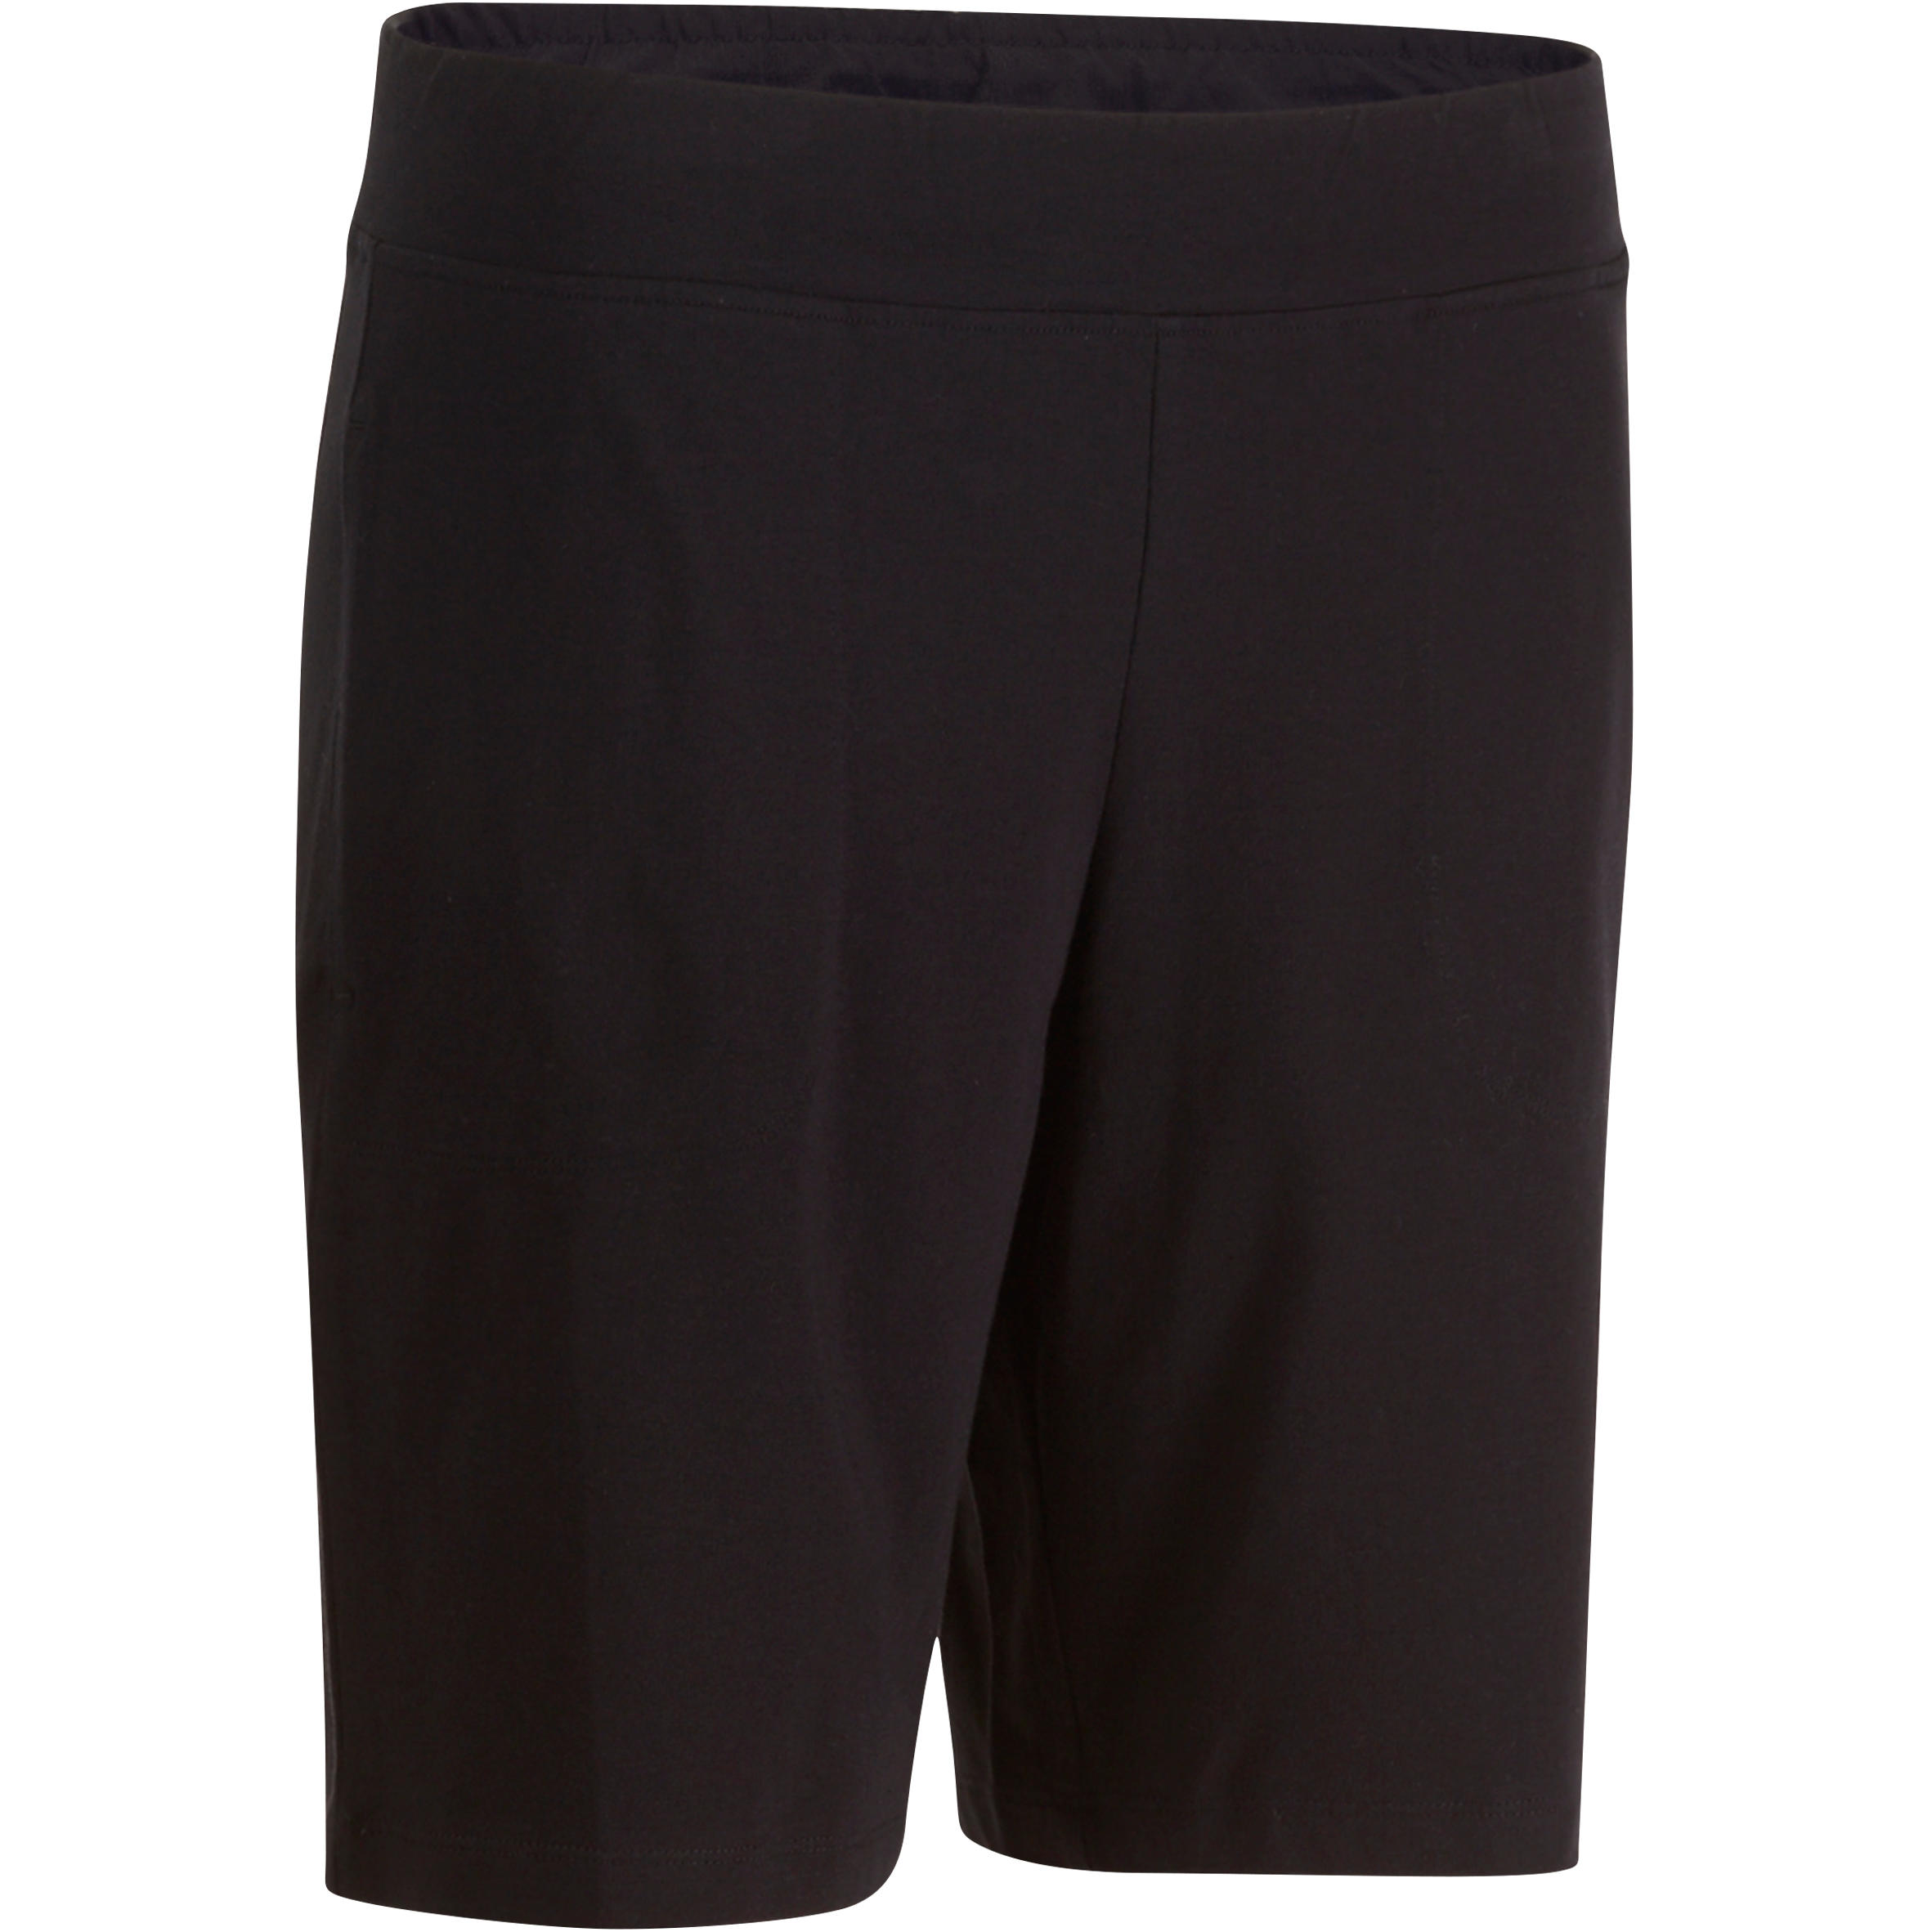 Short Fit+ 500 regular Pilates y Gimnasia suave mujer negro